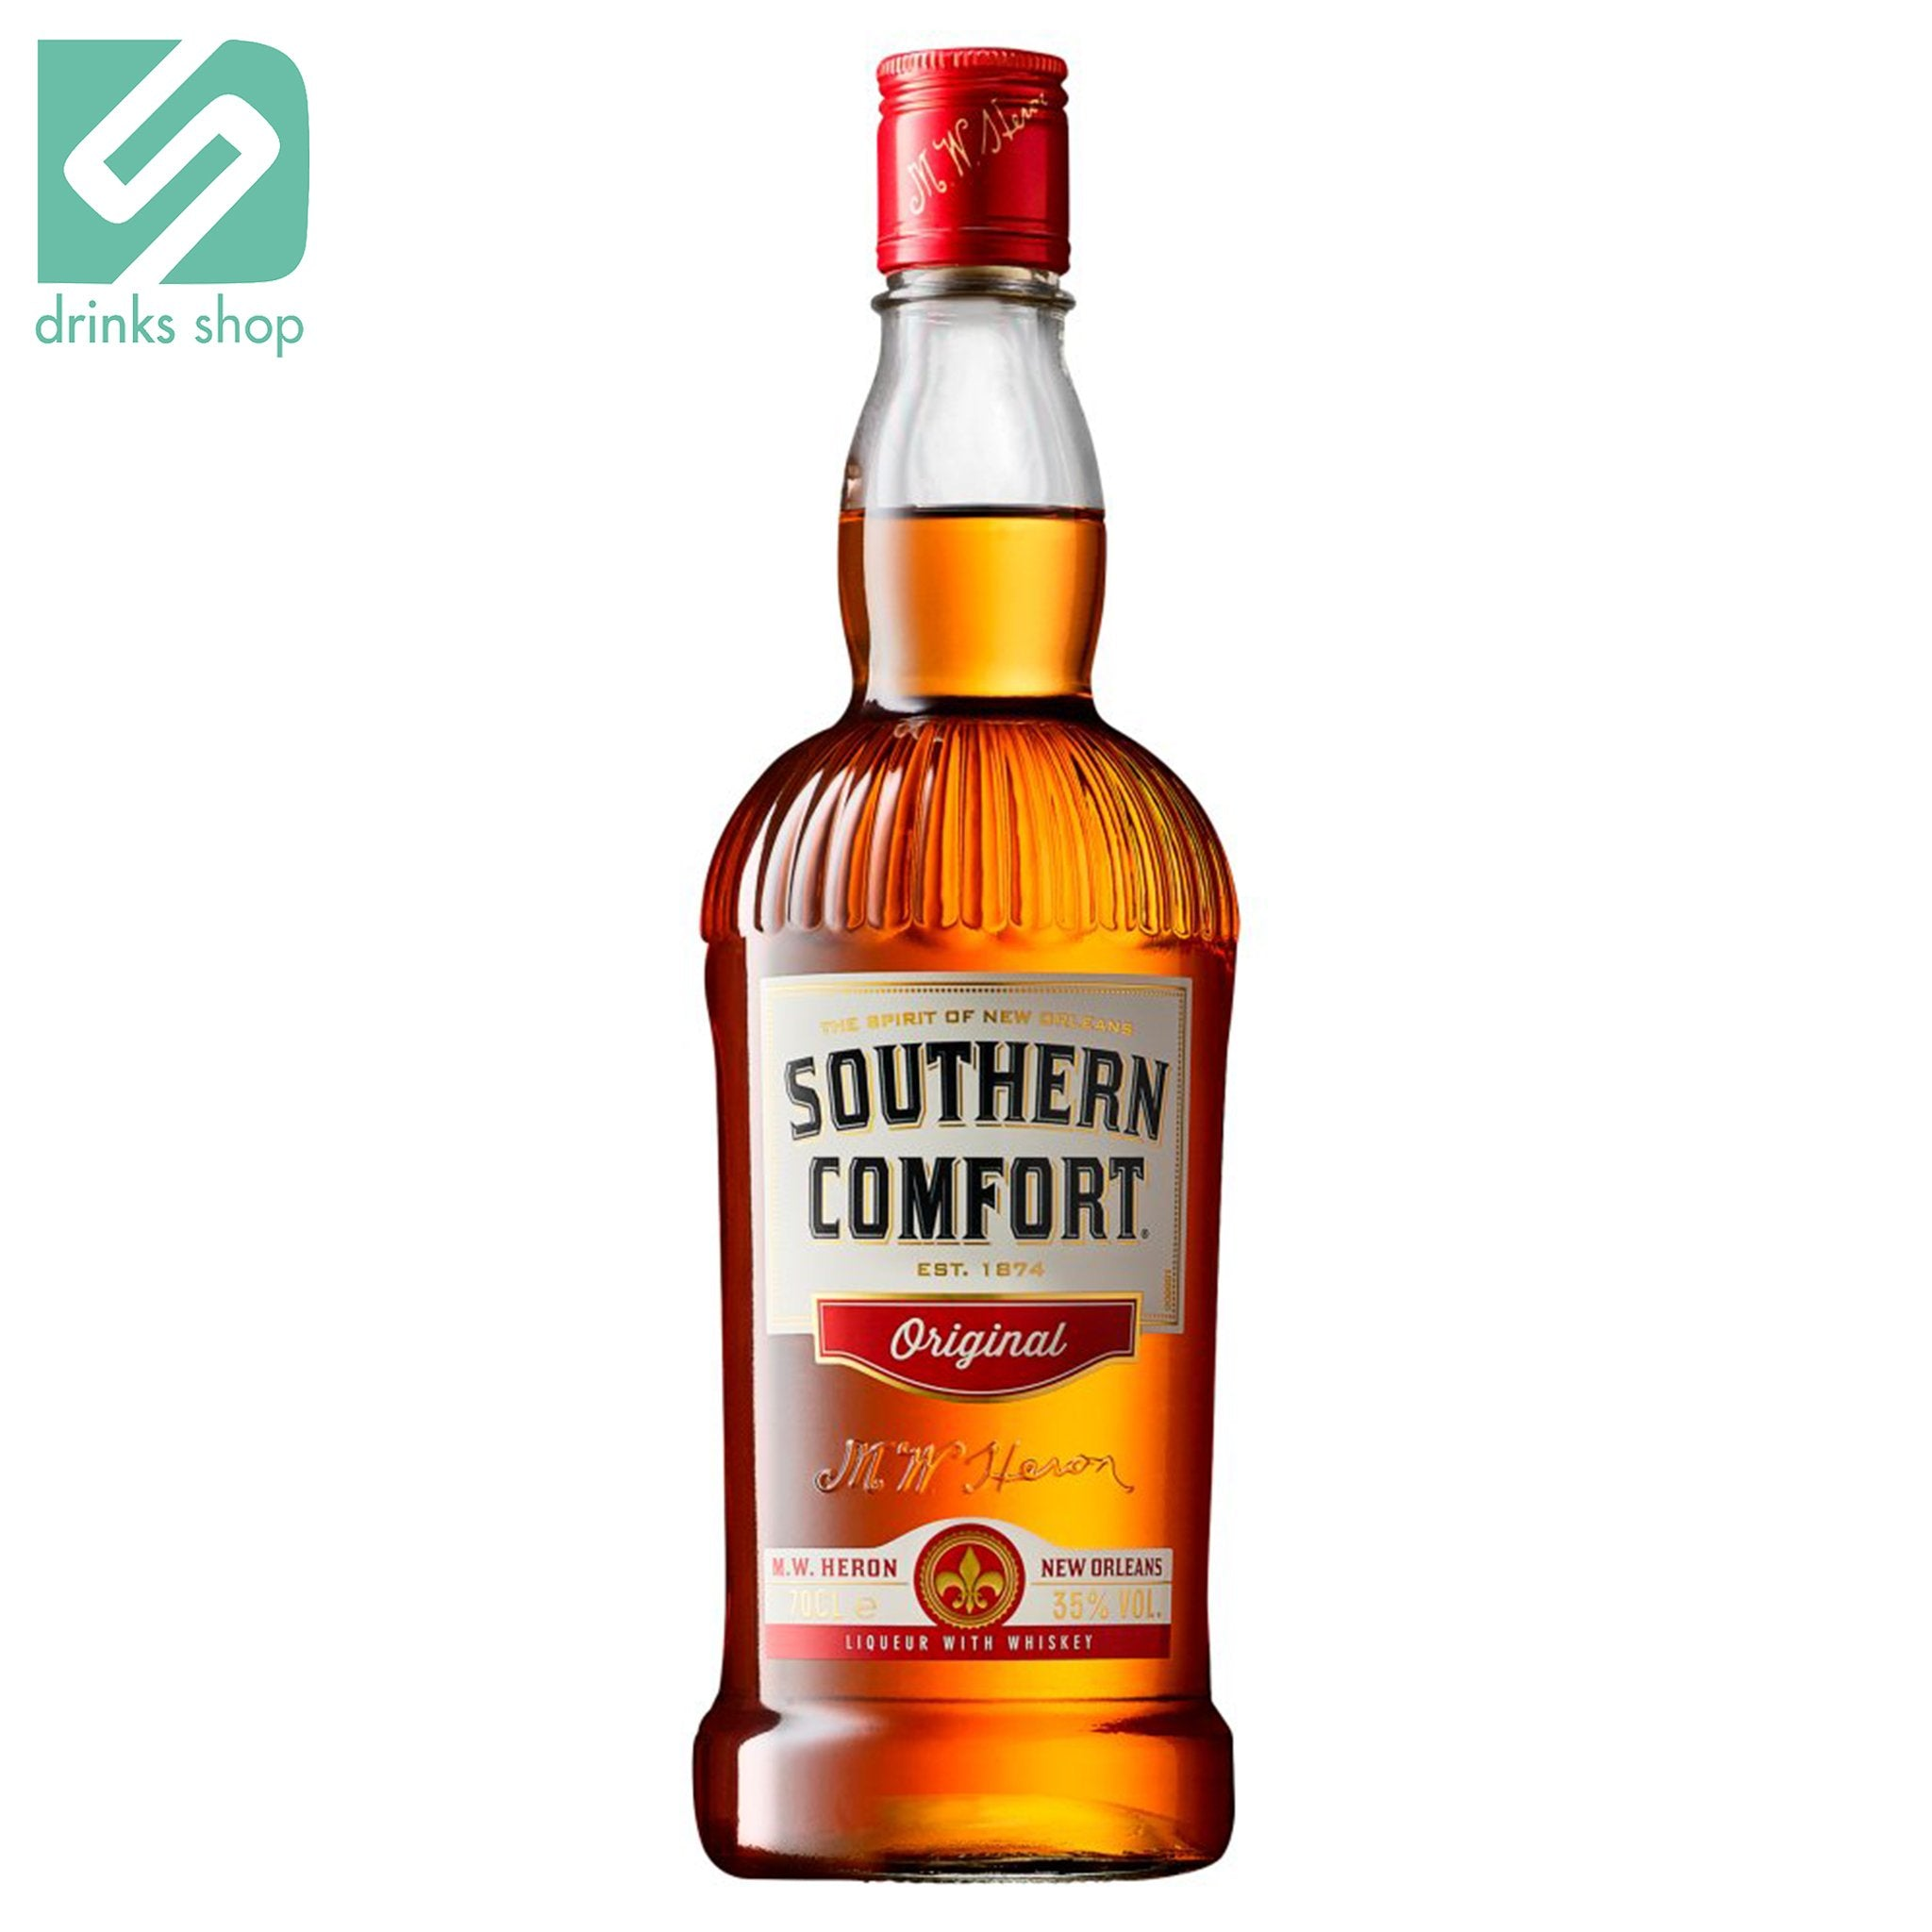 Southern Comfort Original Liqueur with Whiskey 70cl, Whisky - Image 1